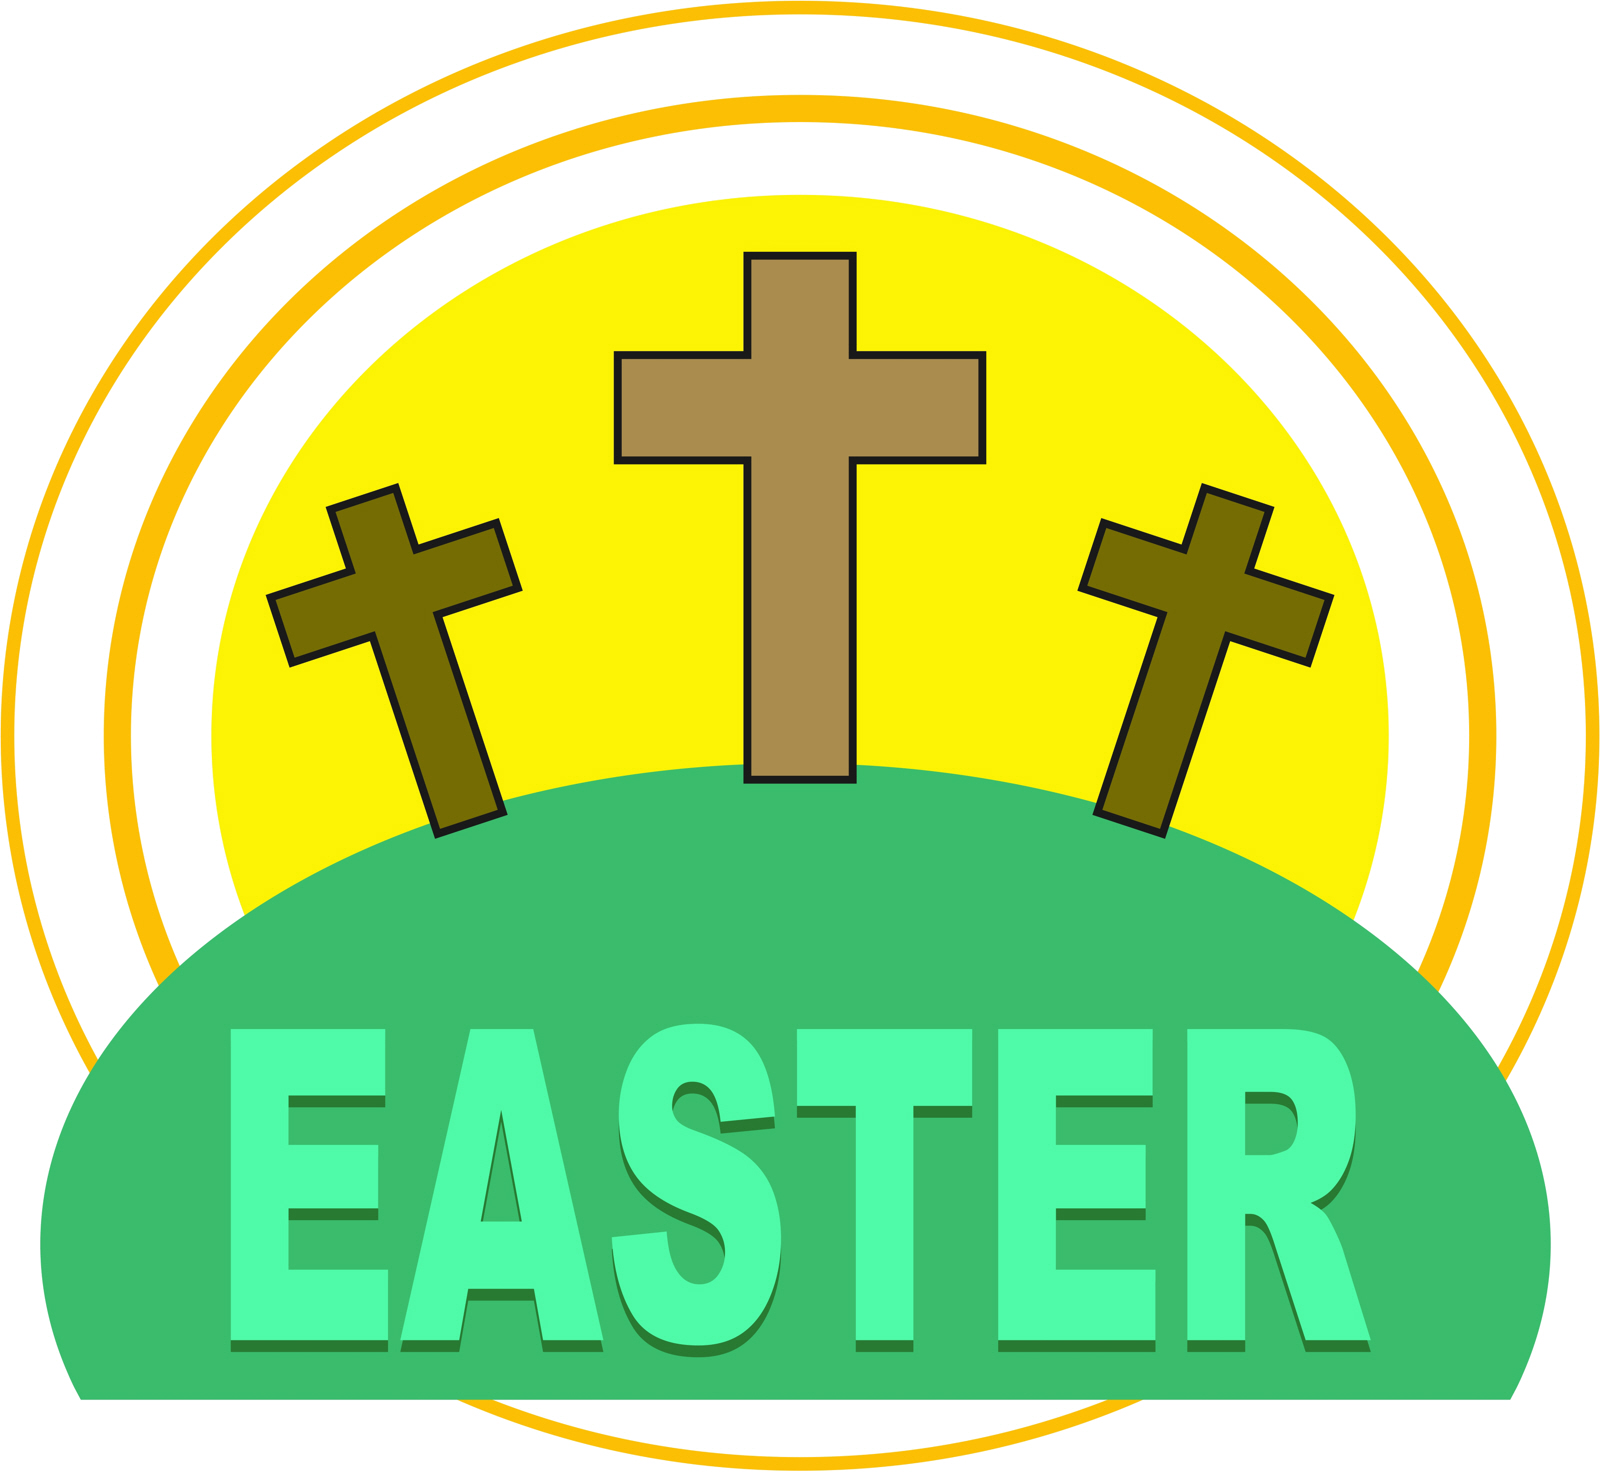 free photo easter cross clipart religion religious salvation rh jooinn com easter lily cross clipart easter crosses clipart